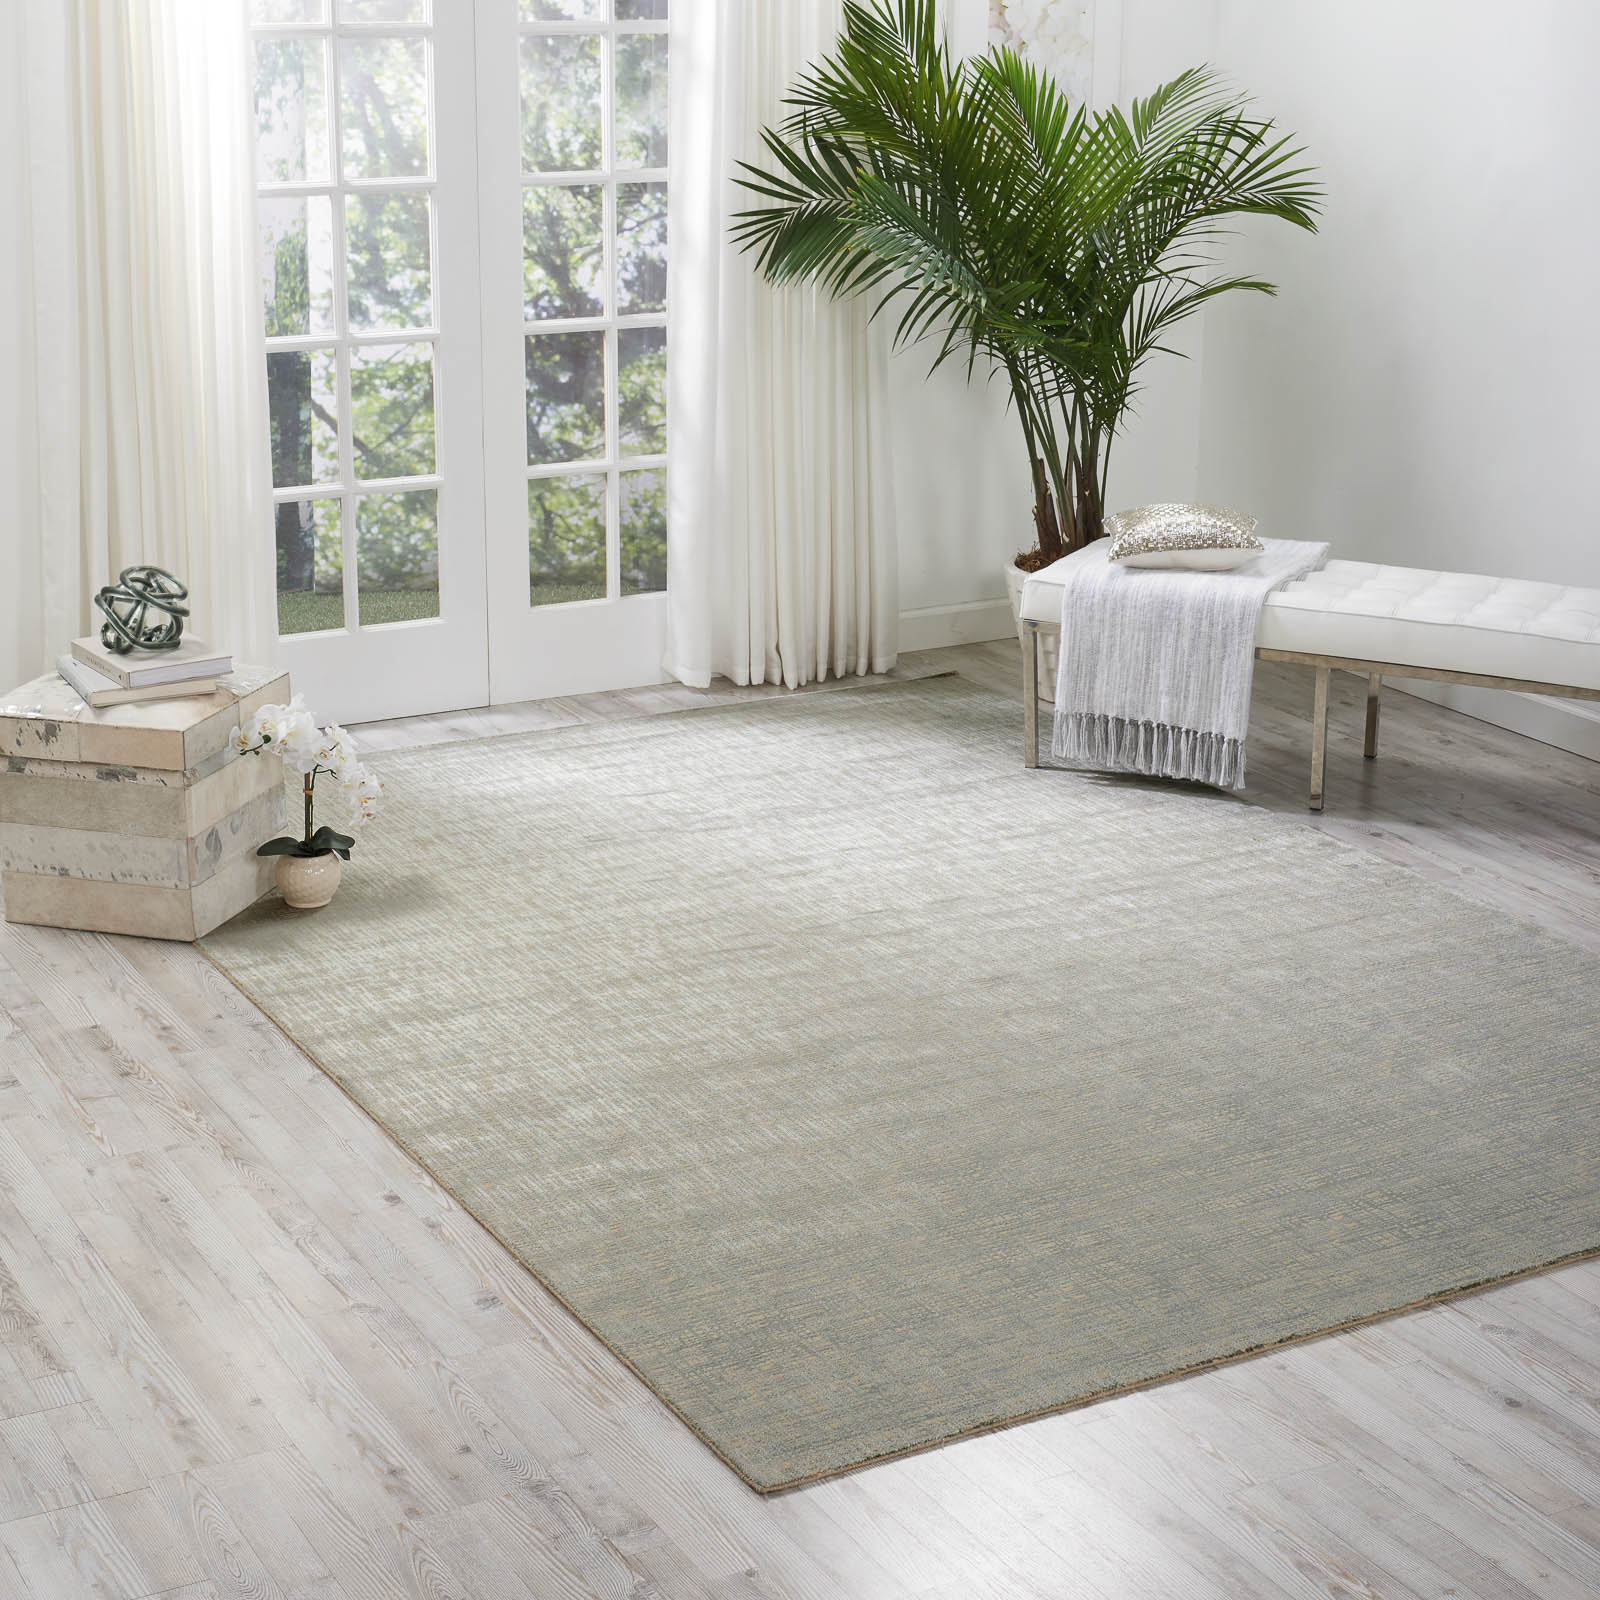 Starlight Rugs STA02 in Sea Mist